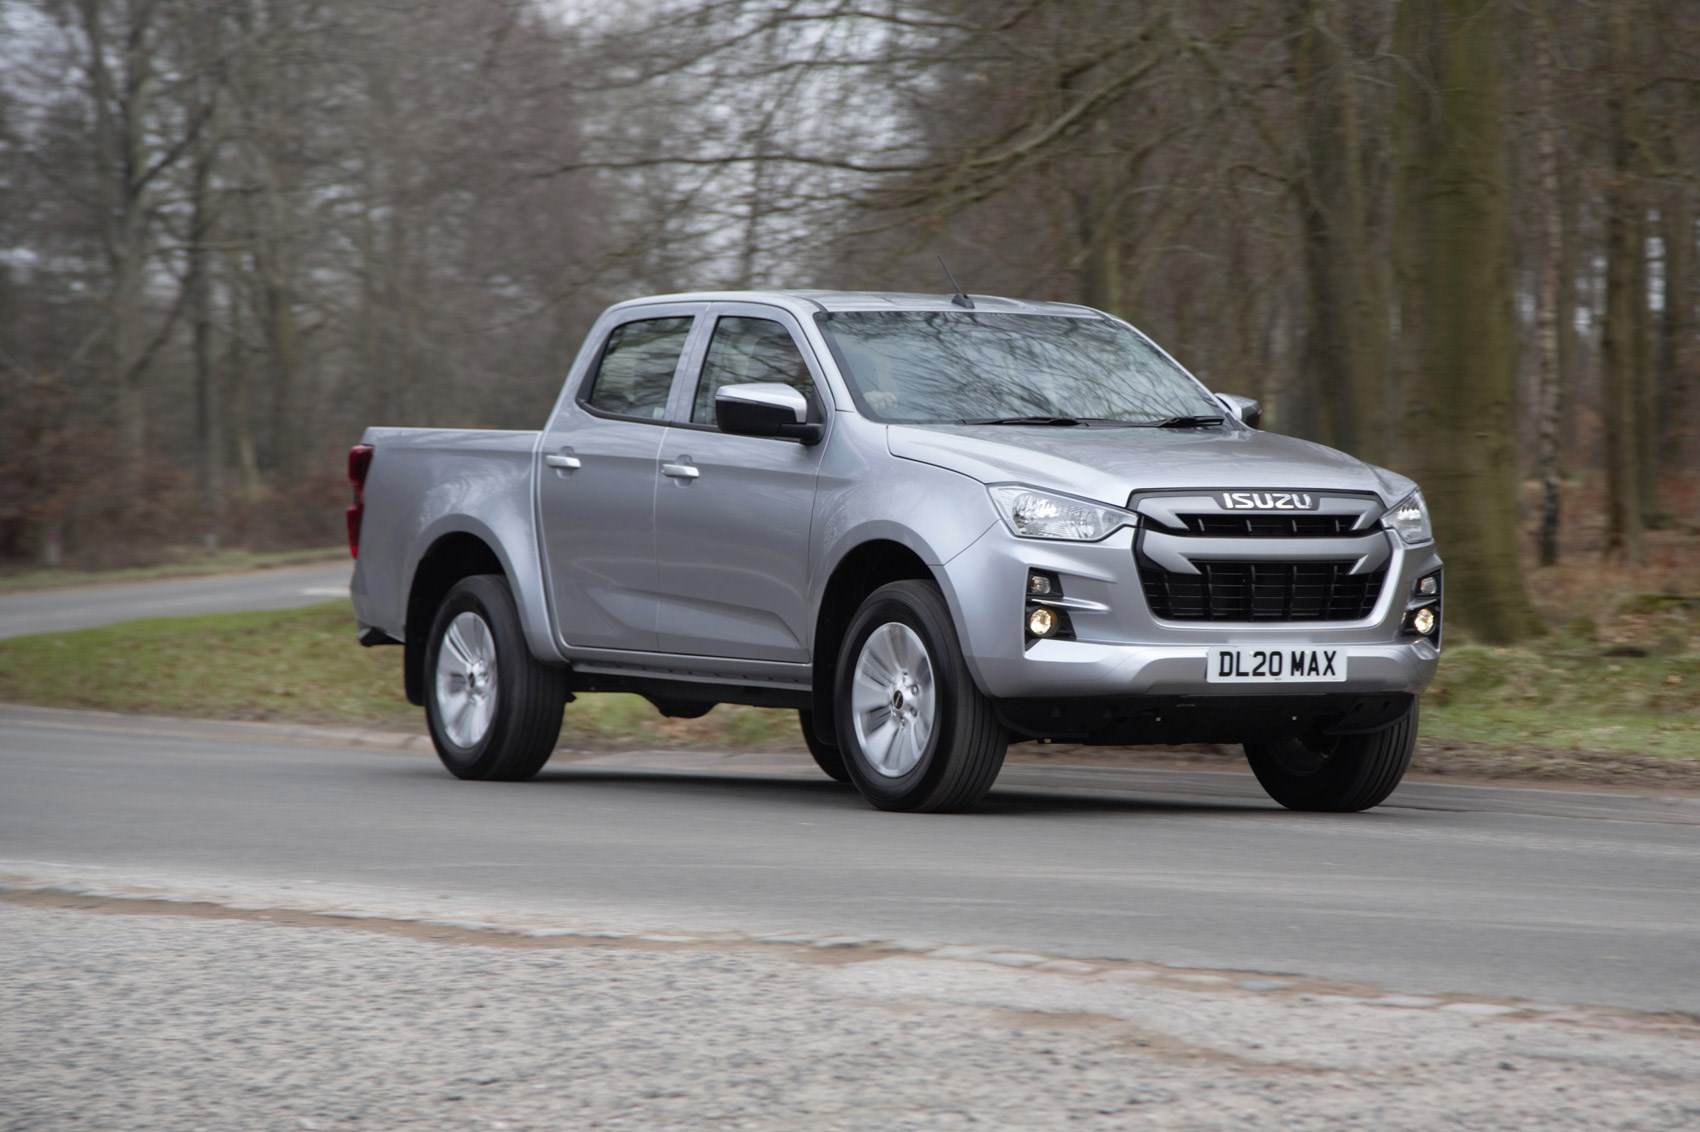 Isuzu D-Max review, 2021, DL20, front view, driving, silver